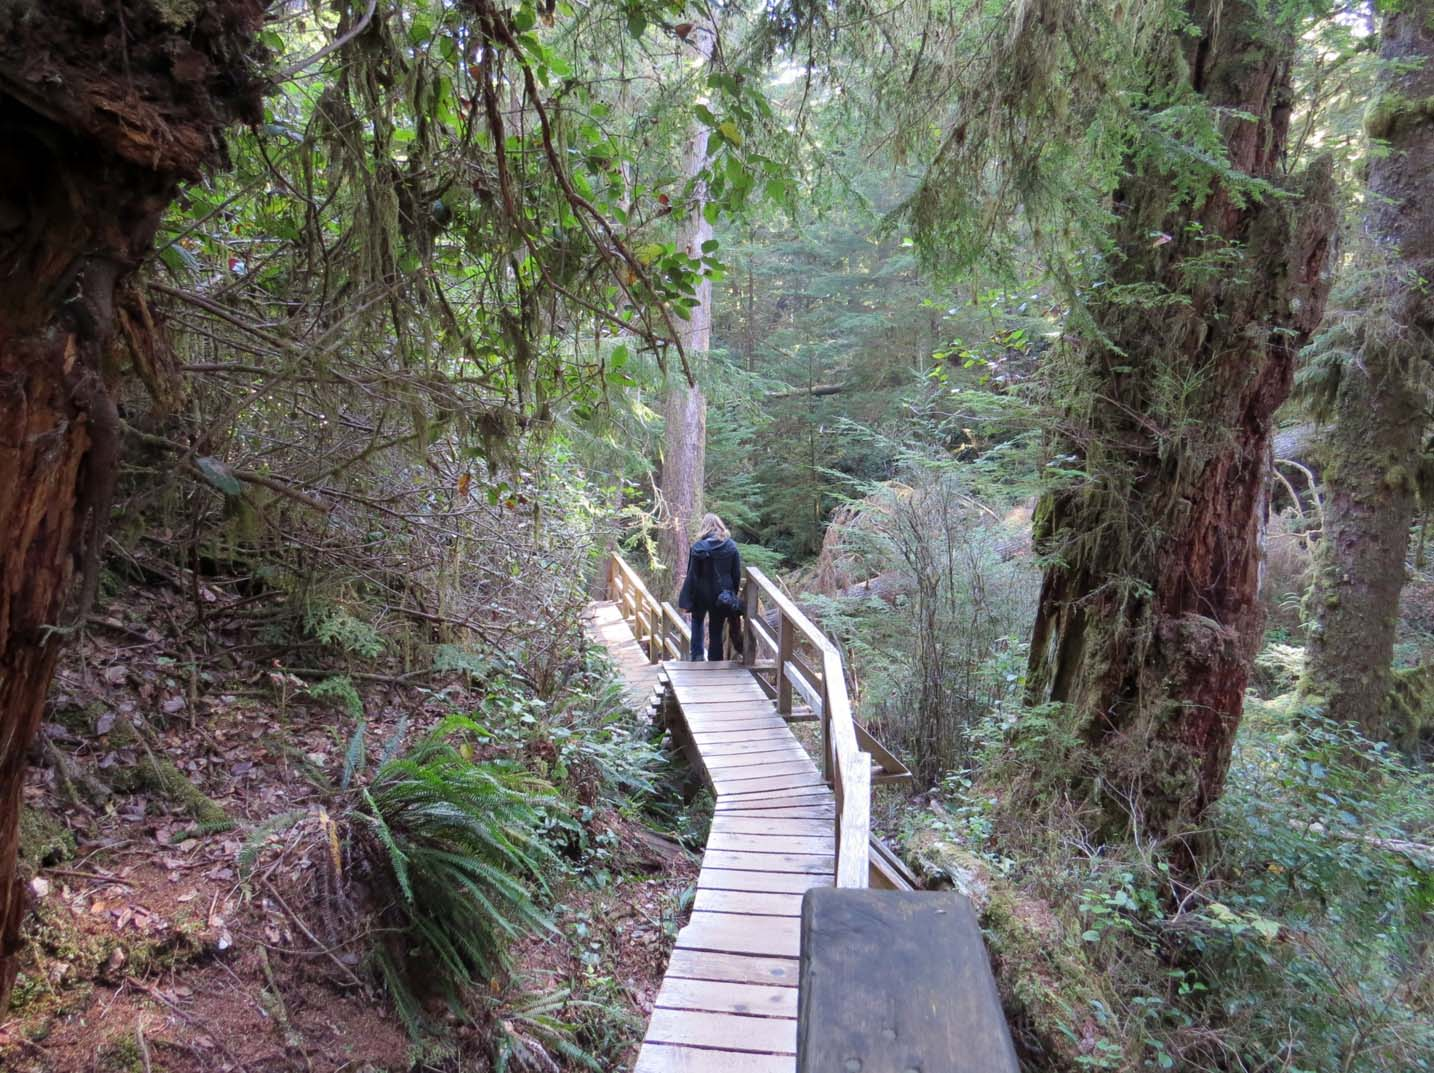 Exploring old growth forest in Tofino